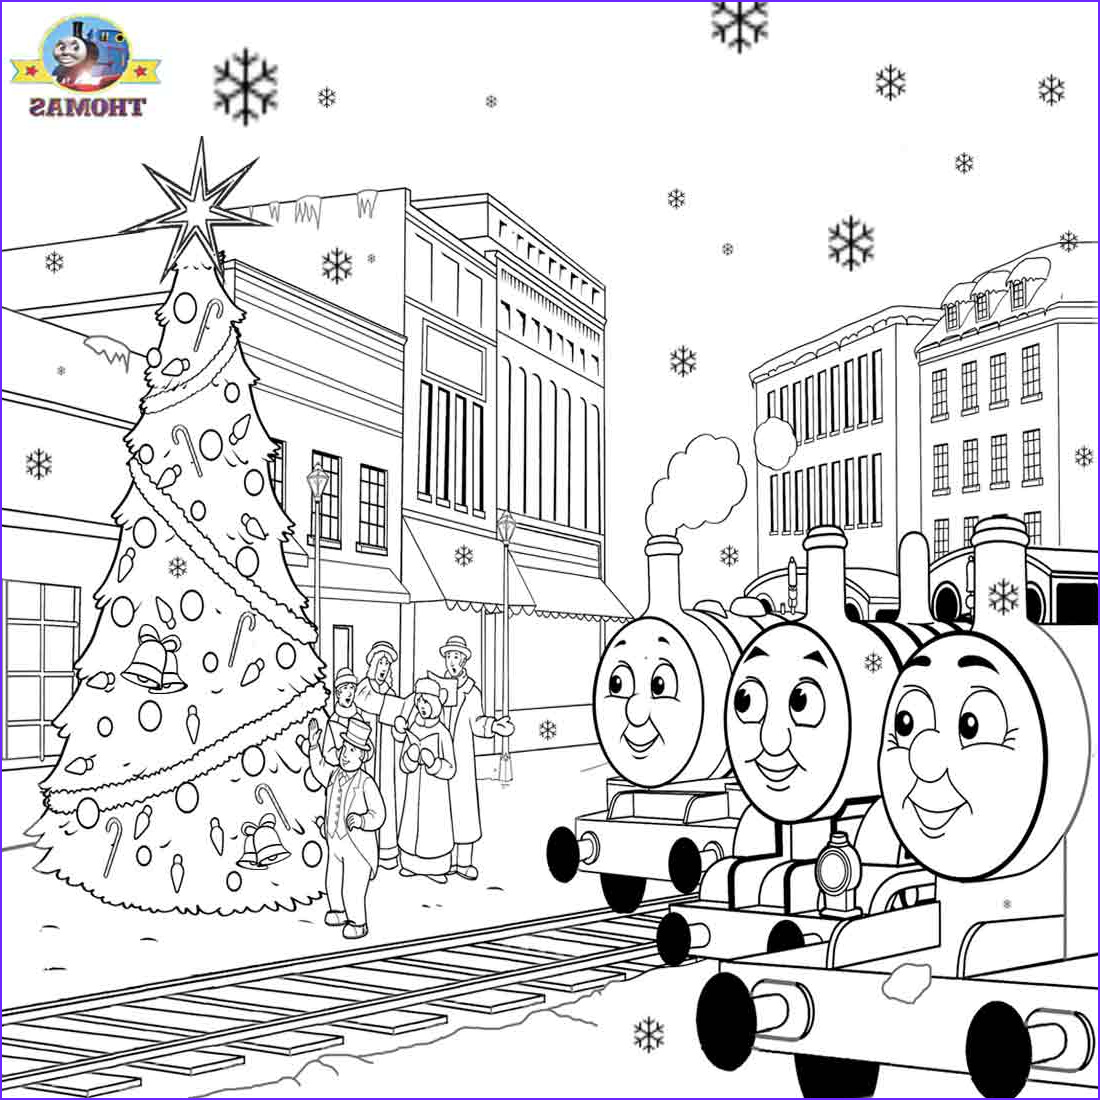 Thomas the Train Coloring Awesome Gallery Train Thomas the Tank Engine Friends Free Online Games and